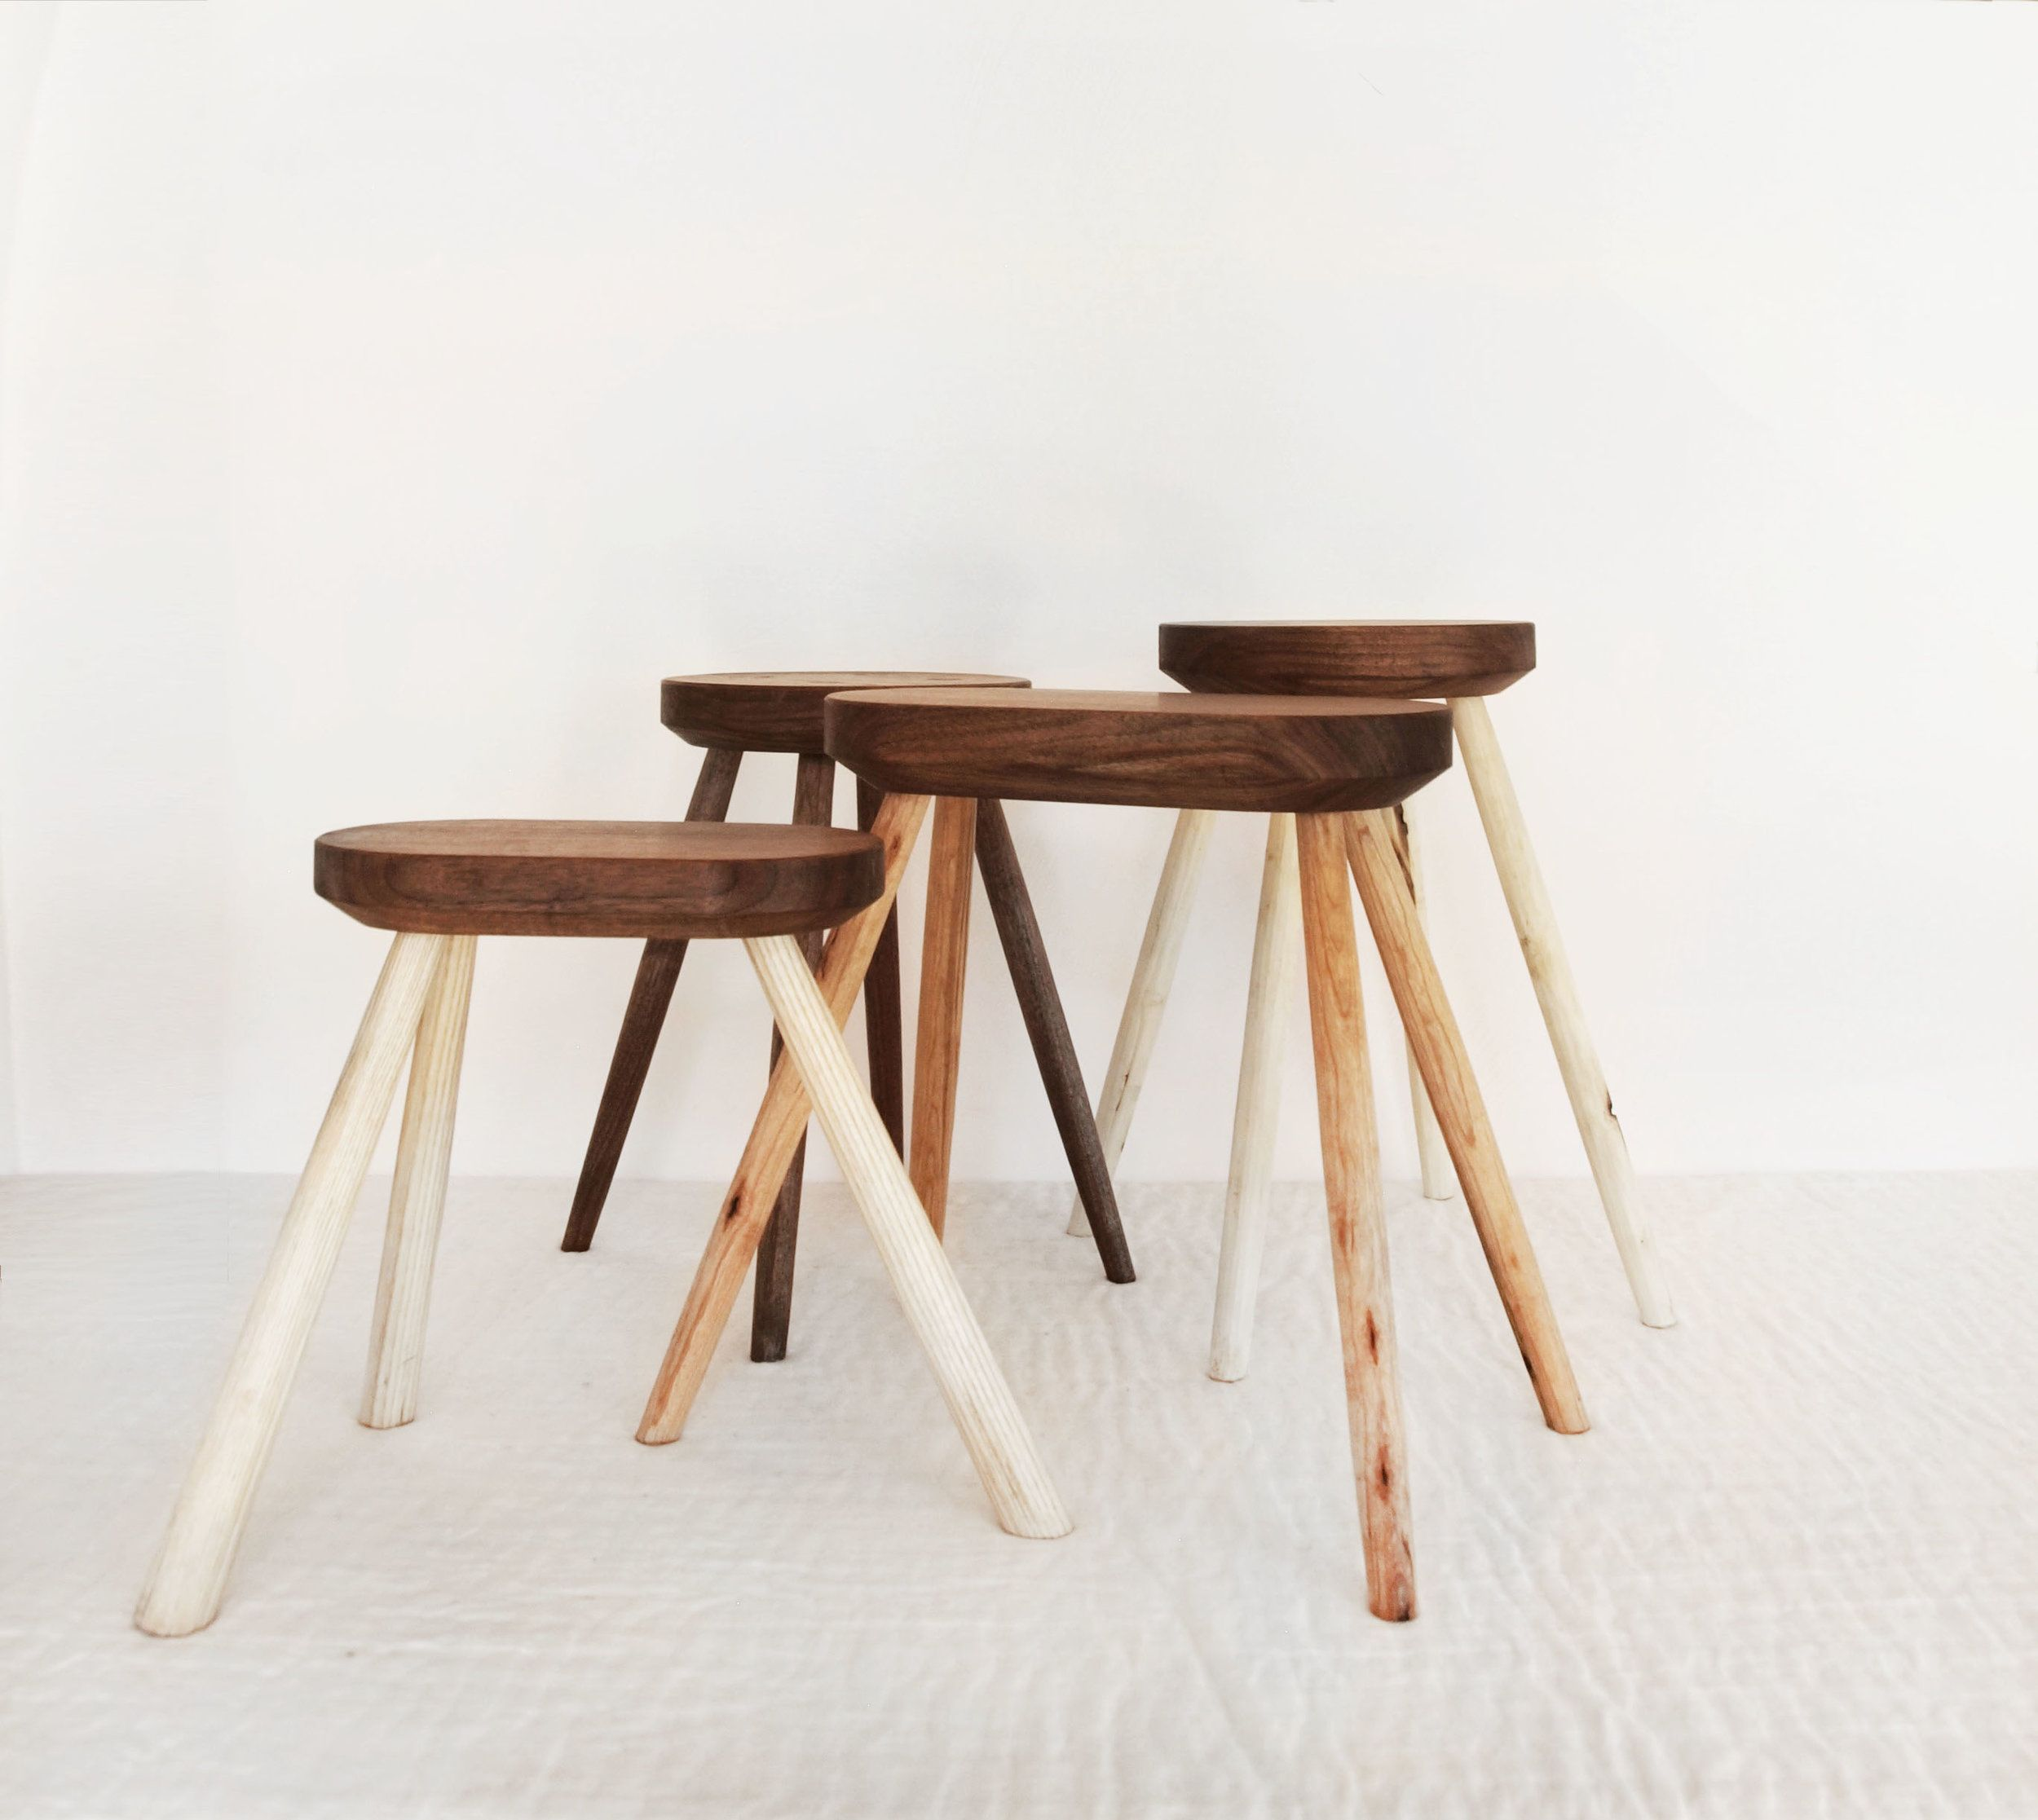 Awesome Odd Stools Brian Persico Furniture Stool Small Stool Lamtechconsult Wood Chair Design Ideas Lamtechconsultcom